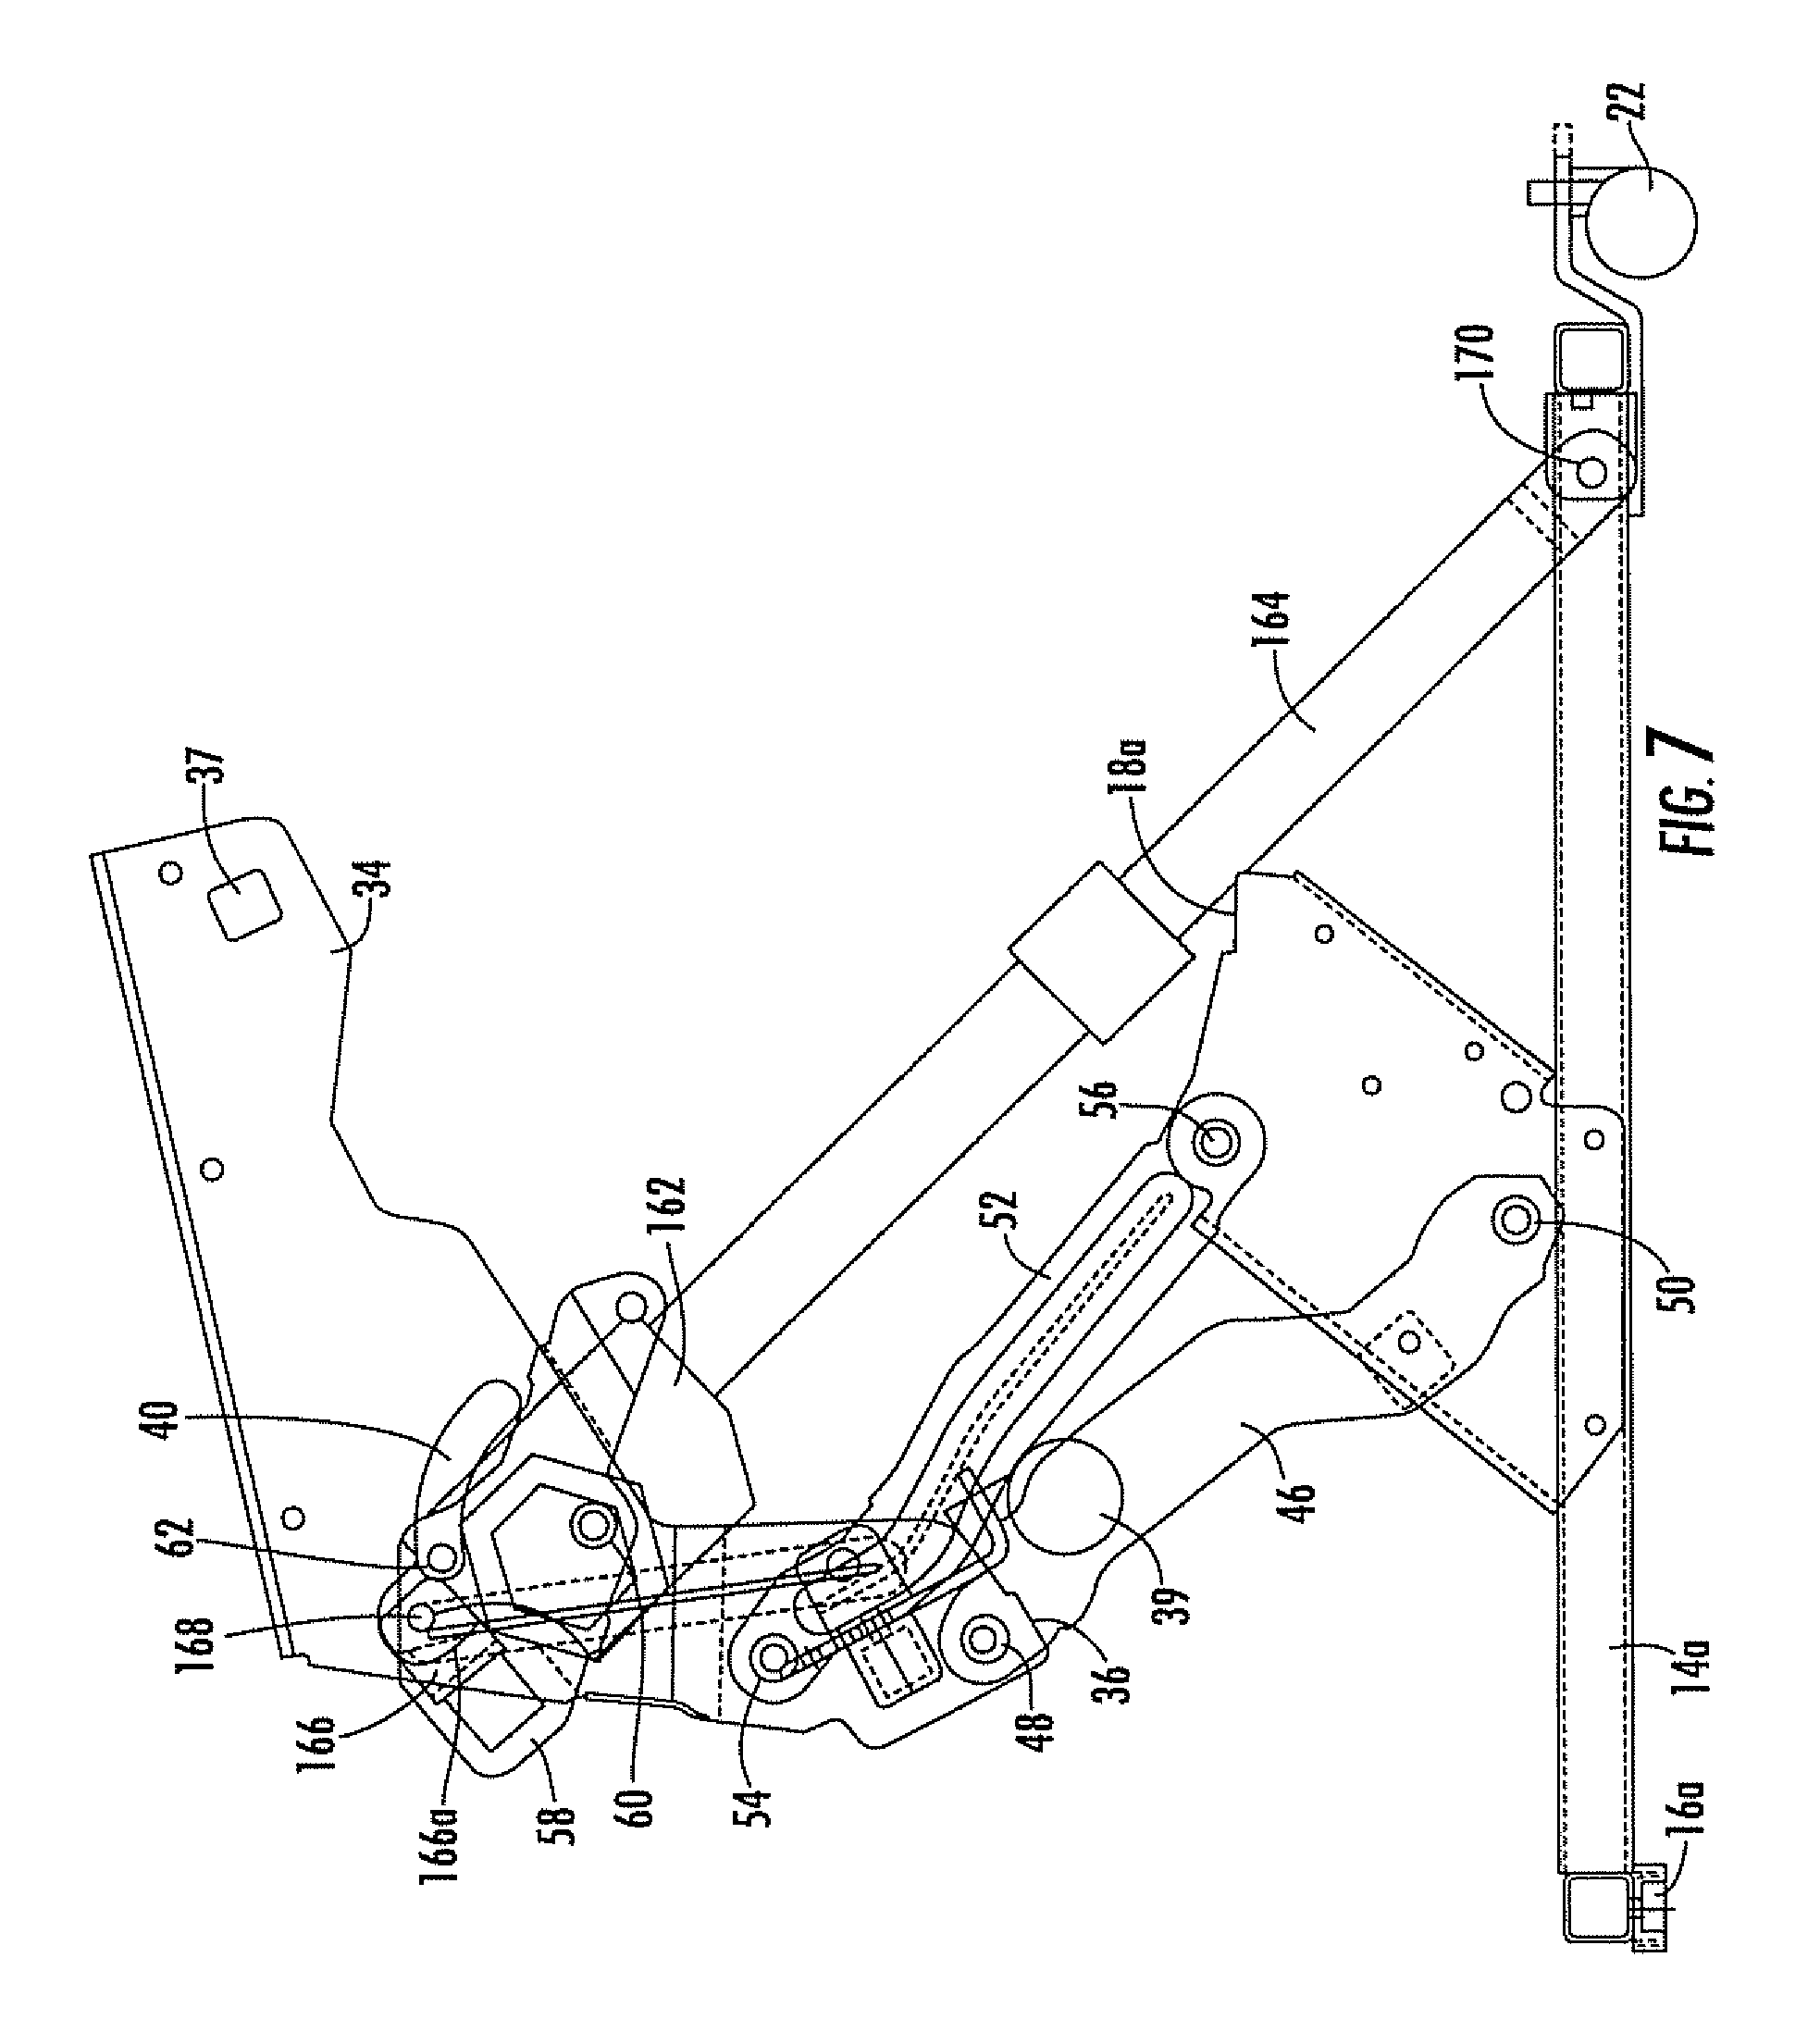 Power Lift Diagram : Patent us recliner lift chair with power and